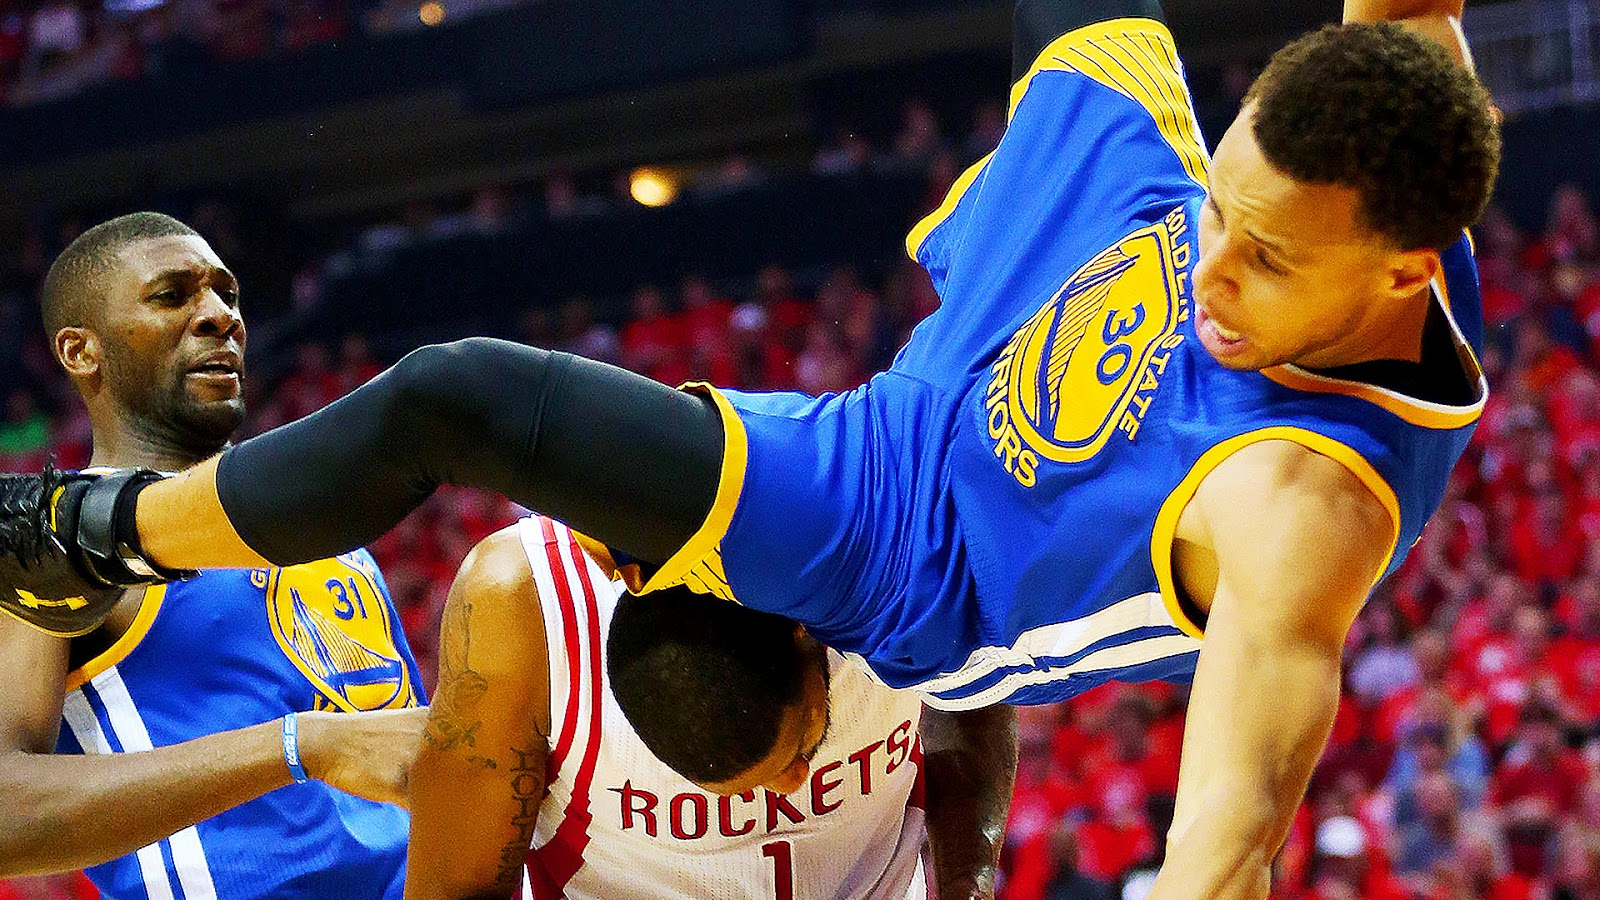 Basketball Player Stephen Curry Example Best Theme